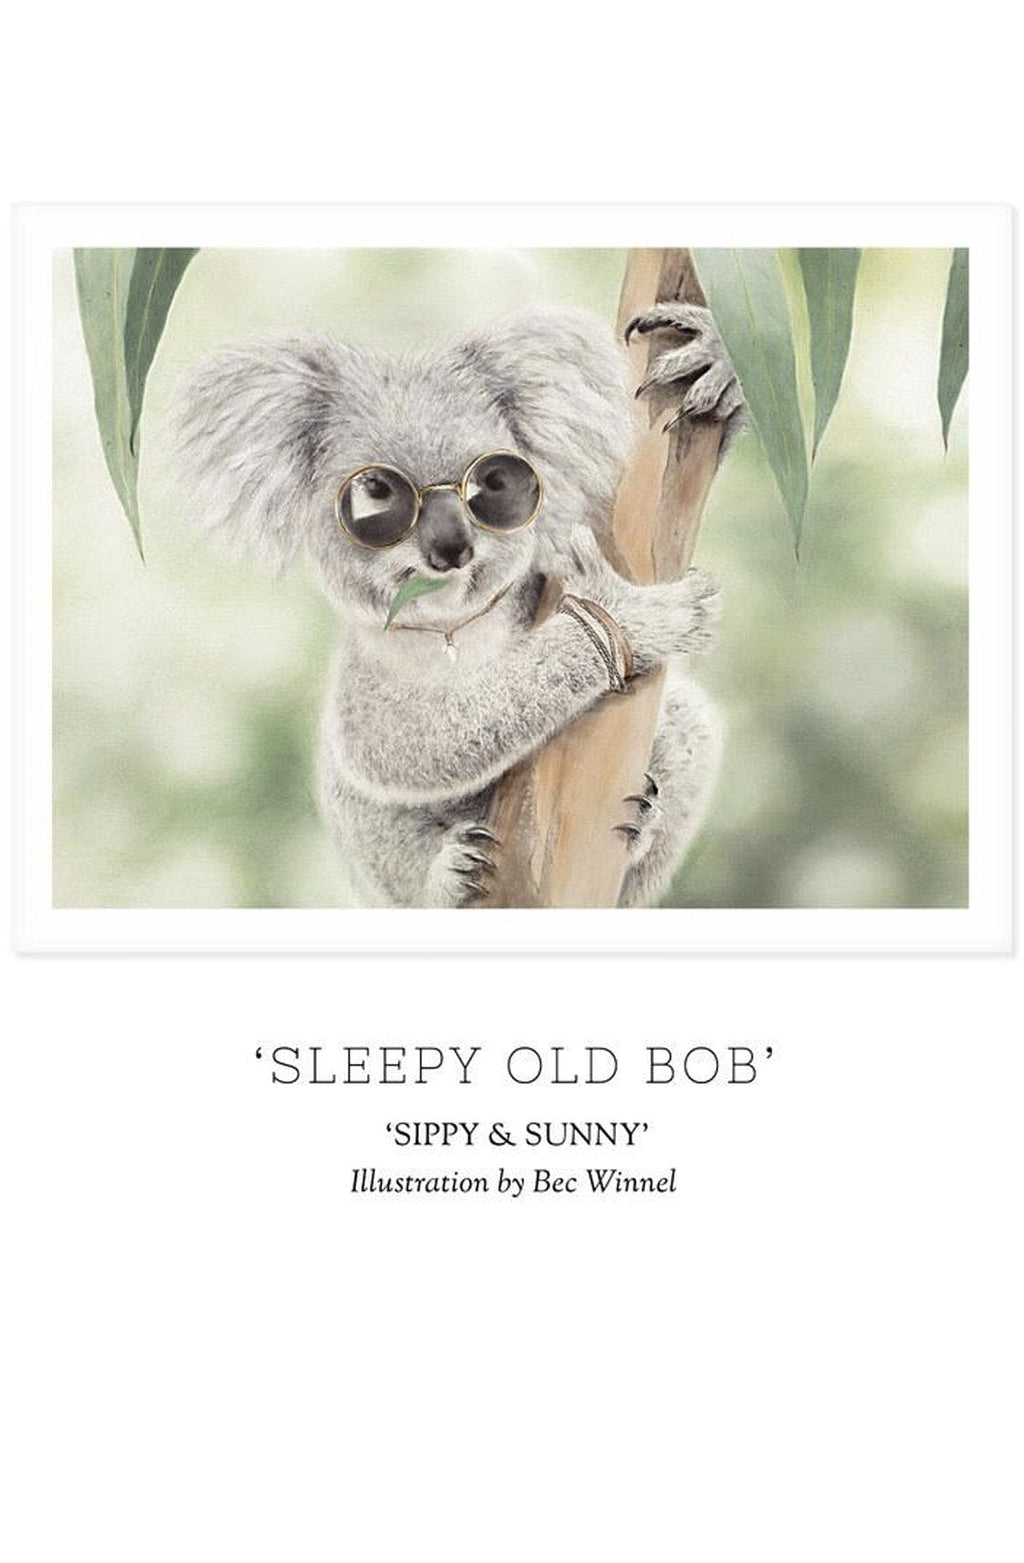 Unclebearskin Productions, SIPPY & SUNNY - 'SLEEPY OLD BOB' Print